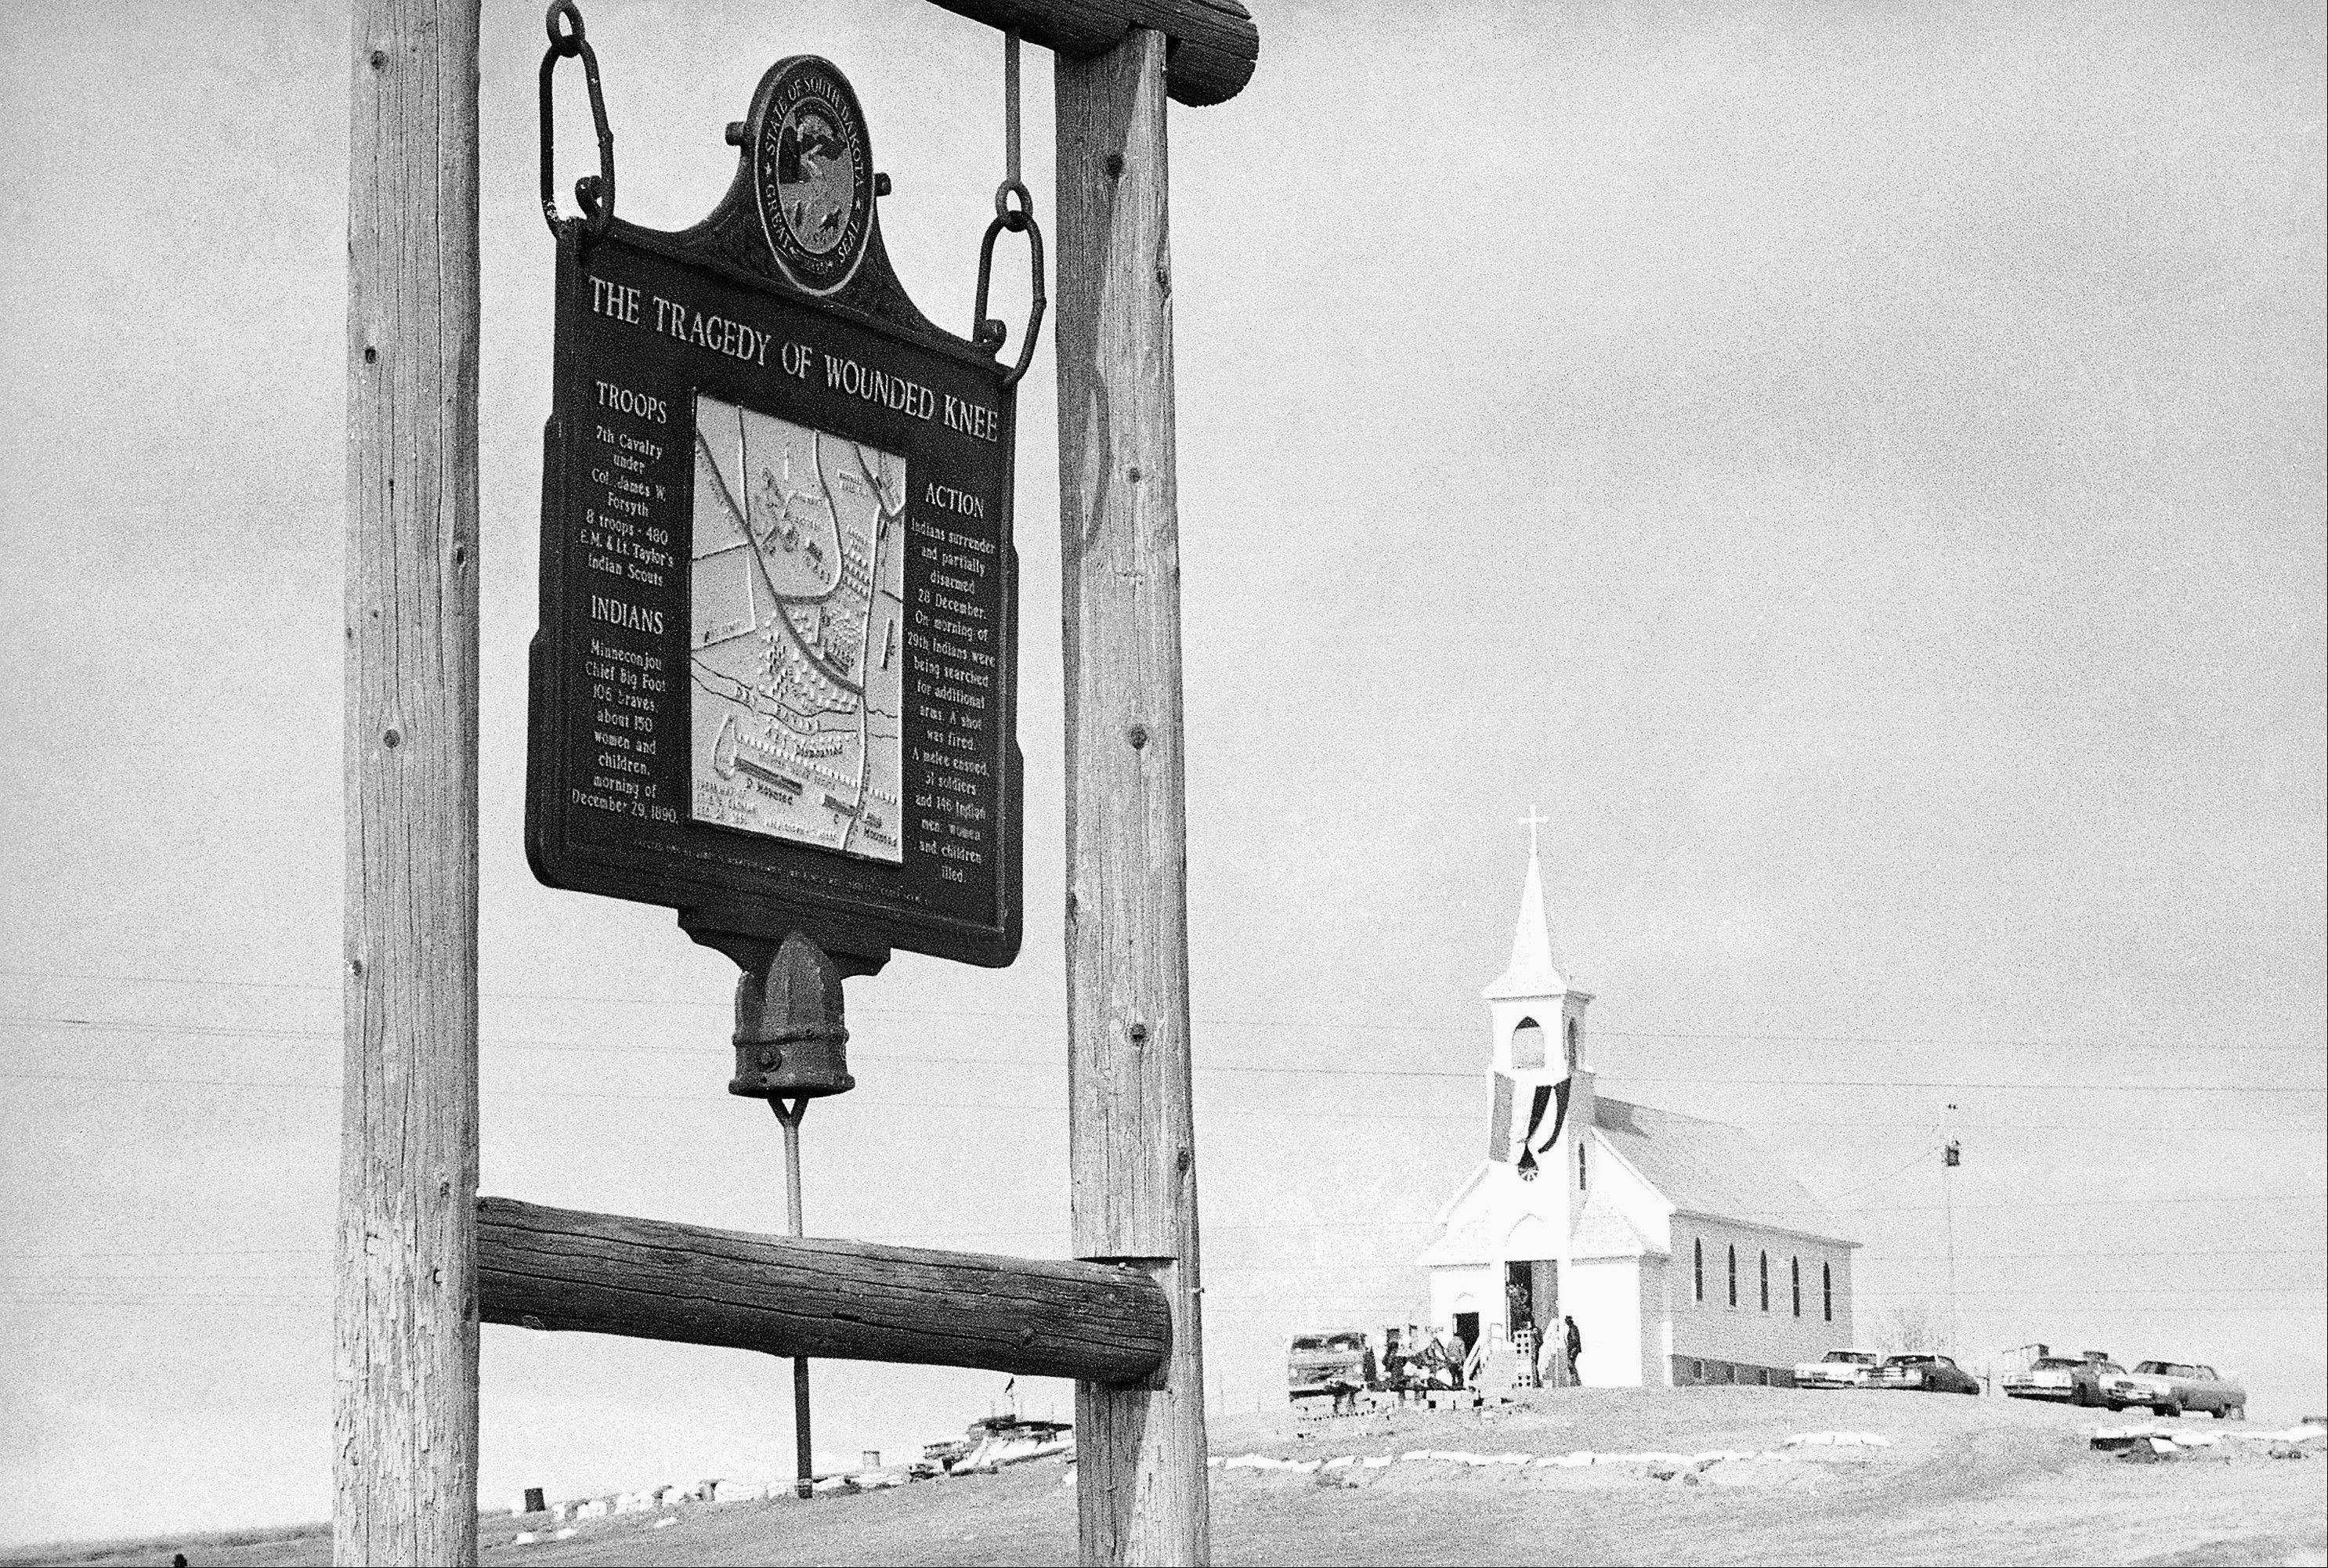 The historical marker commemorating the Wounded Knee Massacre of 1890 on the road near the Sacred Heart Catholic Church in Wounded Knee, S.D. Wednesday is the final day a landowner has given the Oglala Sioux Tribe to make an offer to buy a portion of the Wounded Knee National Historic Landmark.